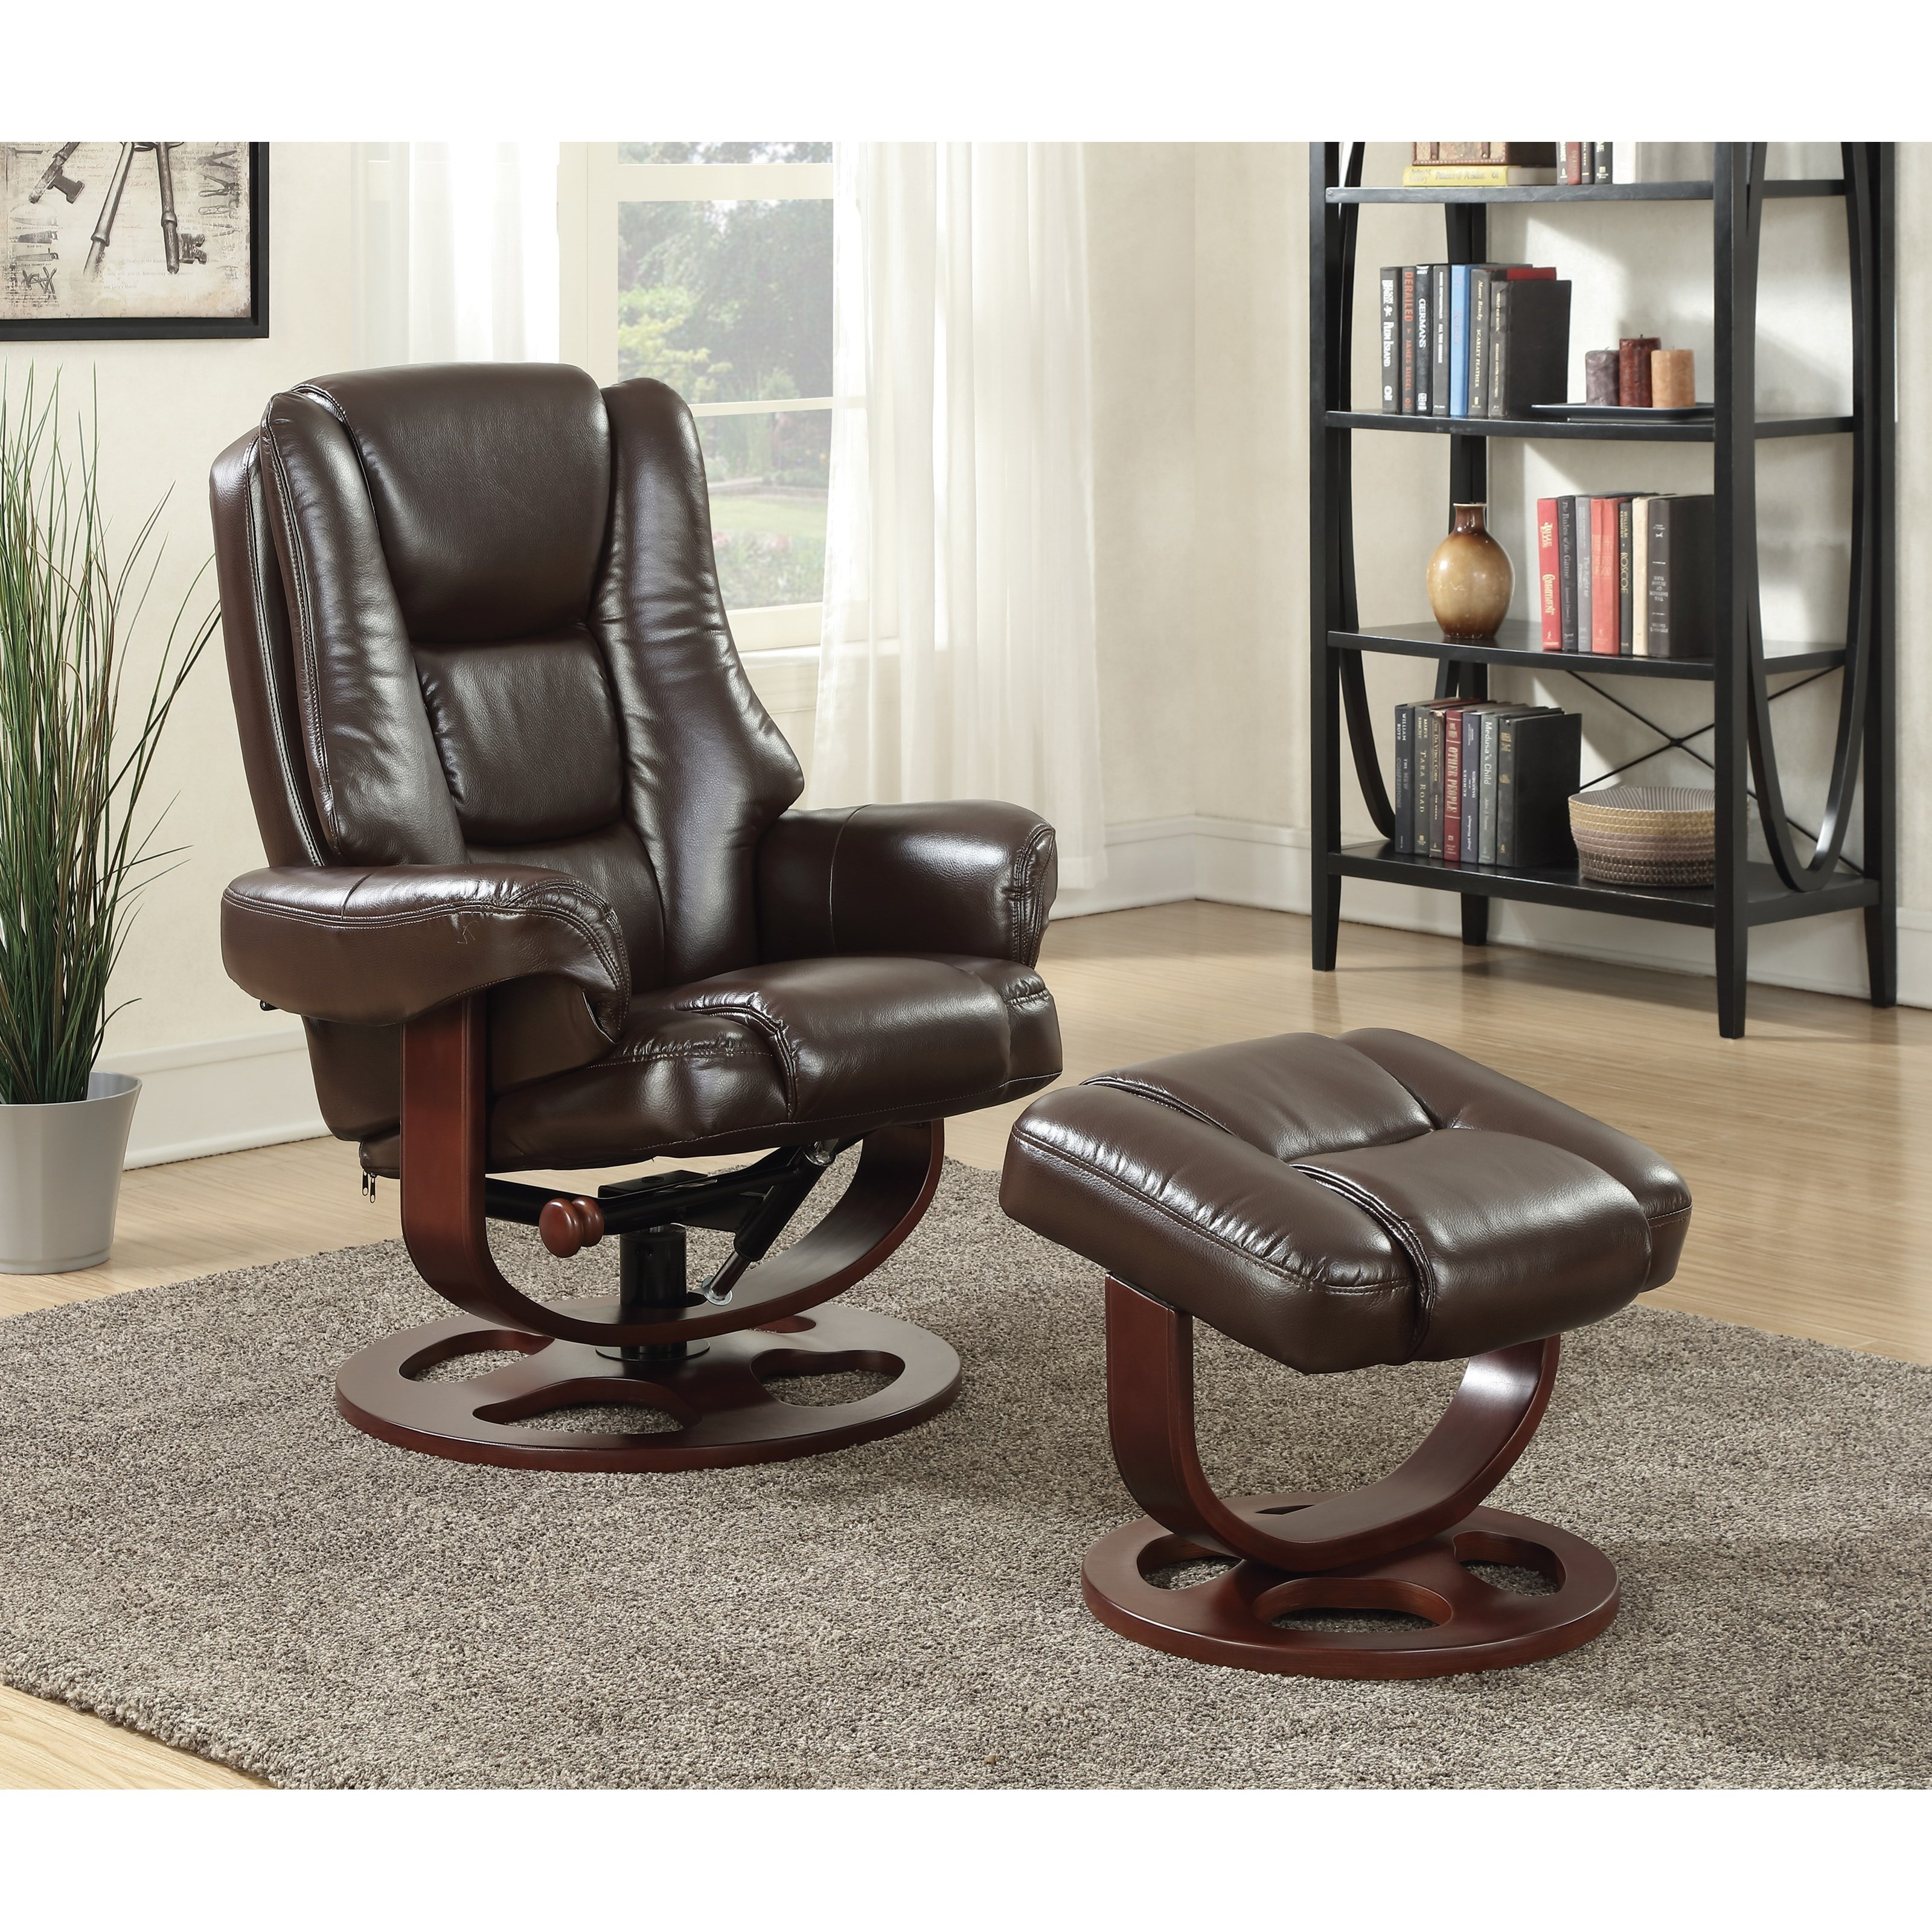 Coaster Recliners With Ottomans Plush Recliner And Ottoman Prime Brothers Furniture